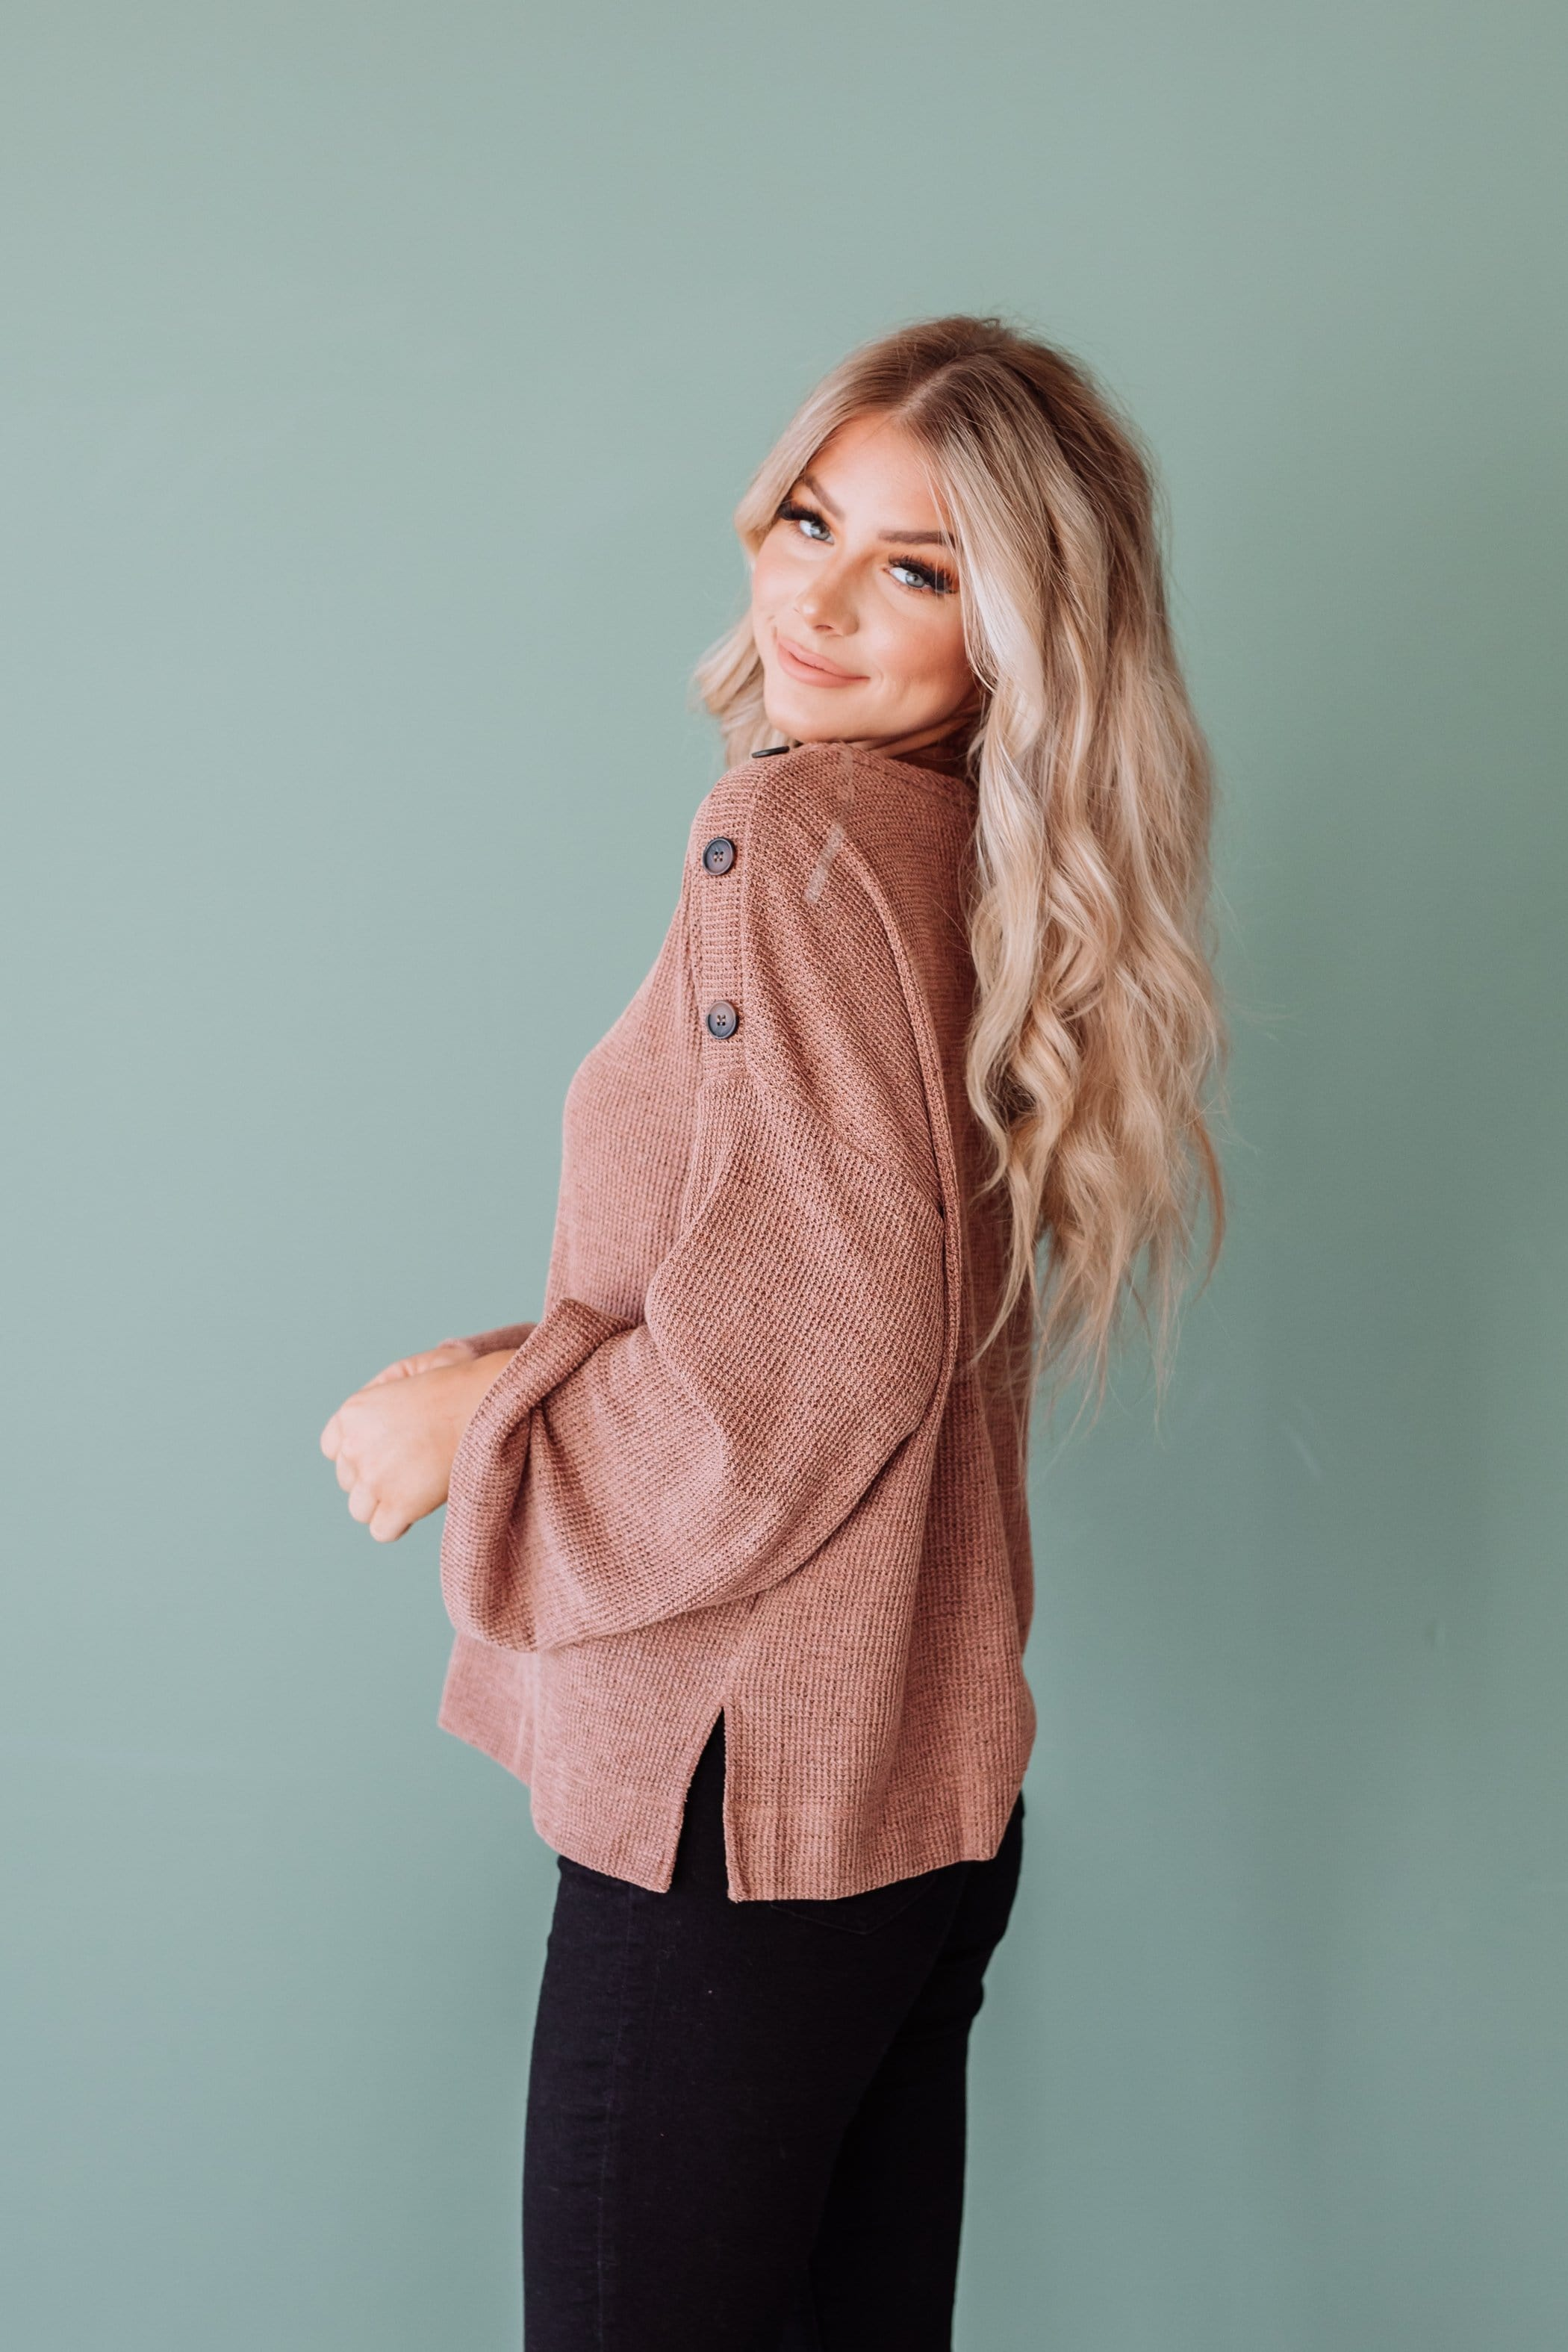 The Gardner Rib Knit Top in Brick and Olive